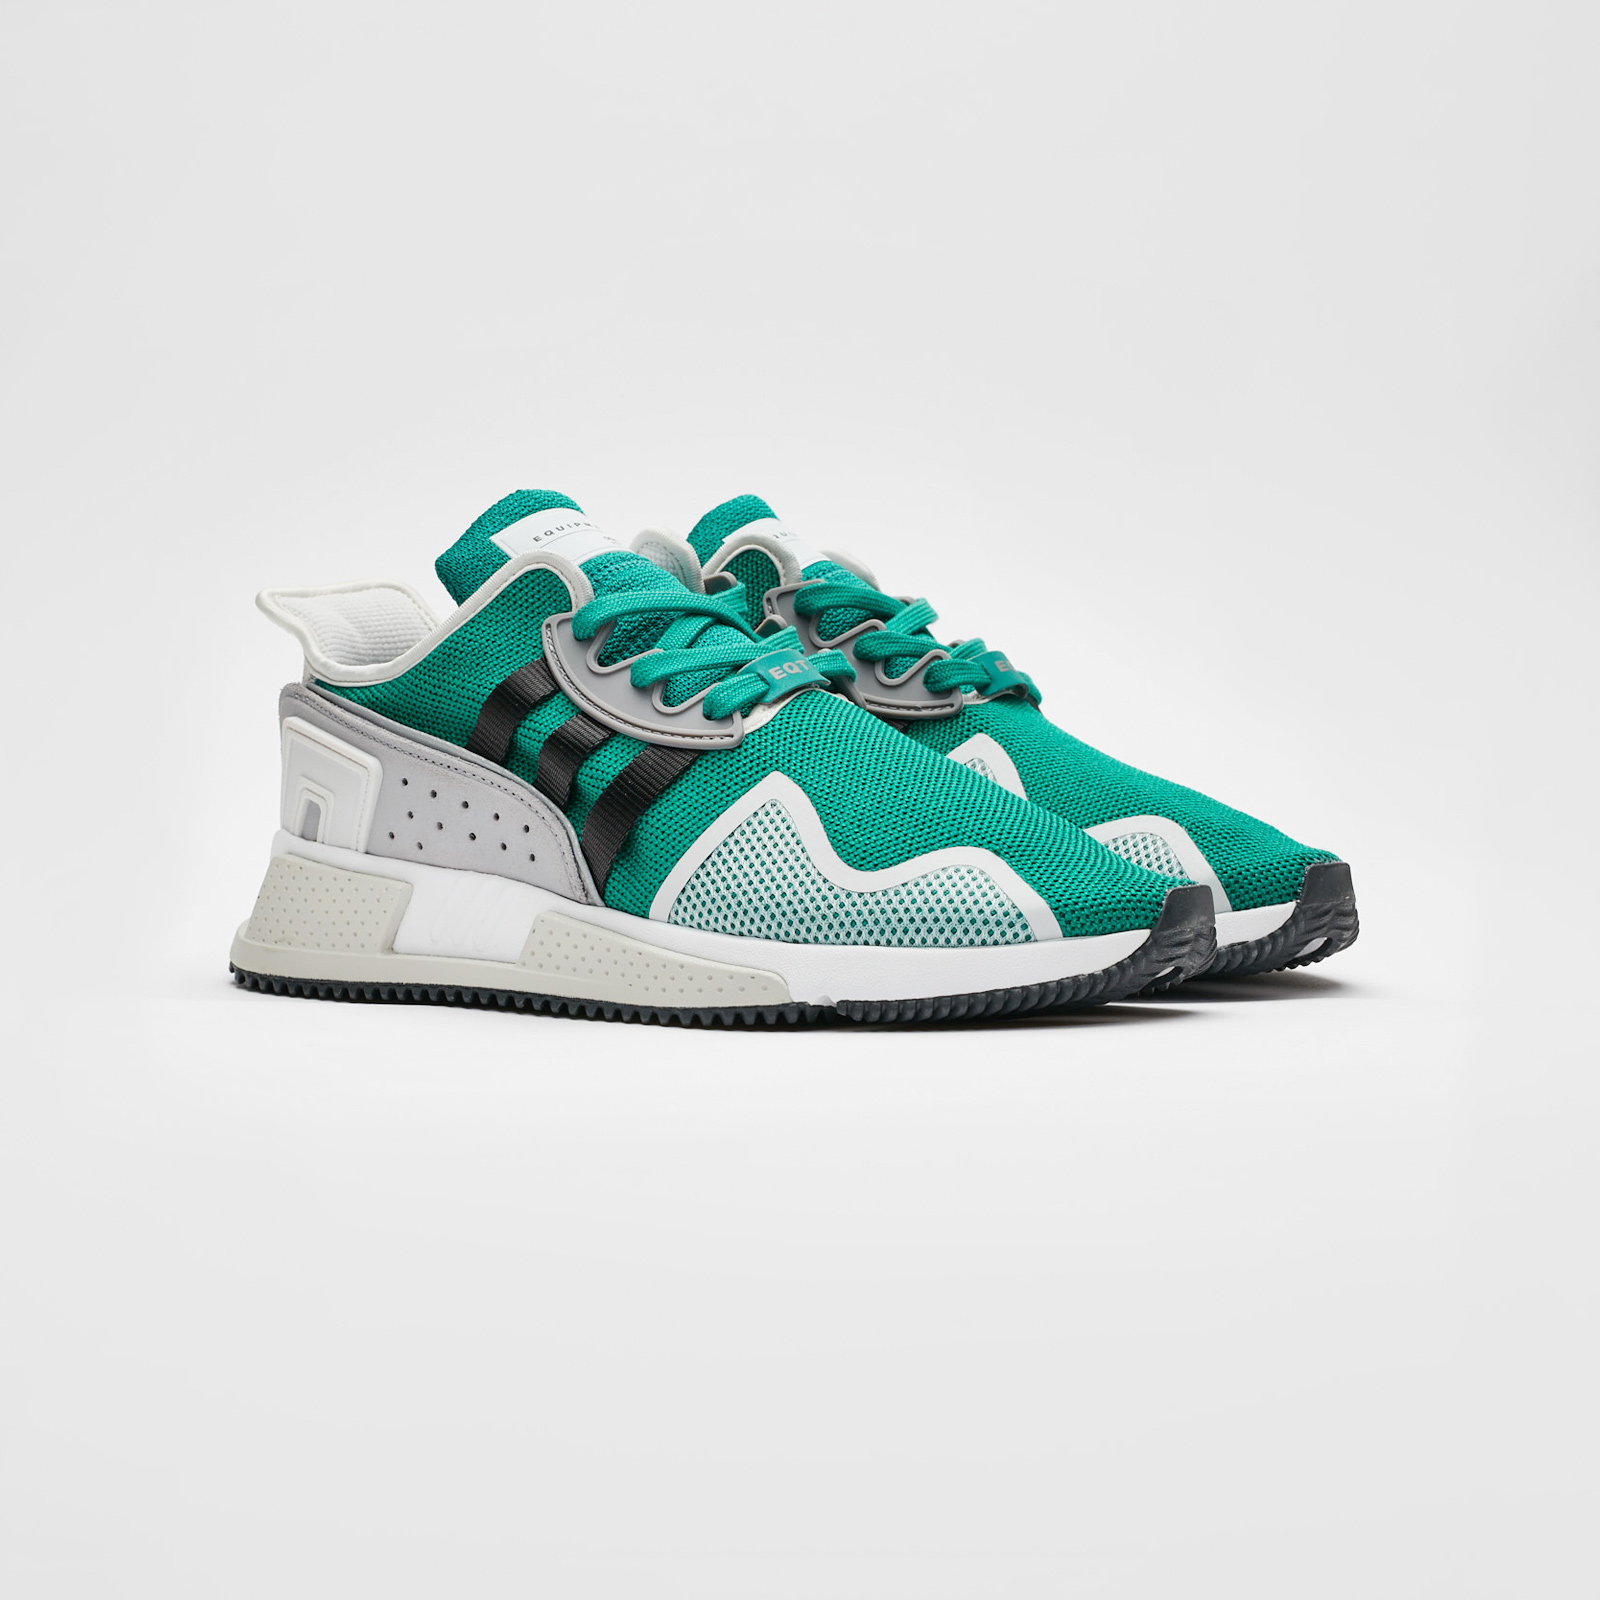 reputable site badb4 f3bed adidas Originals EQT Cushion ADV